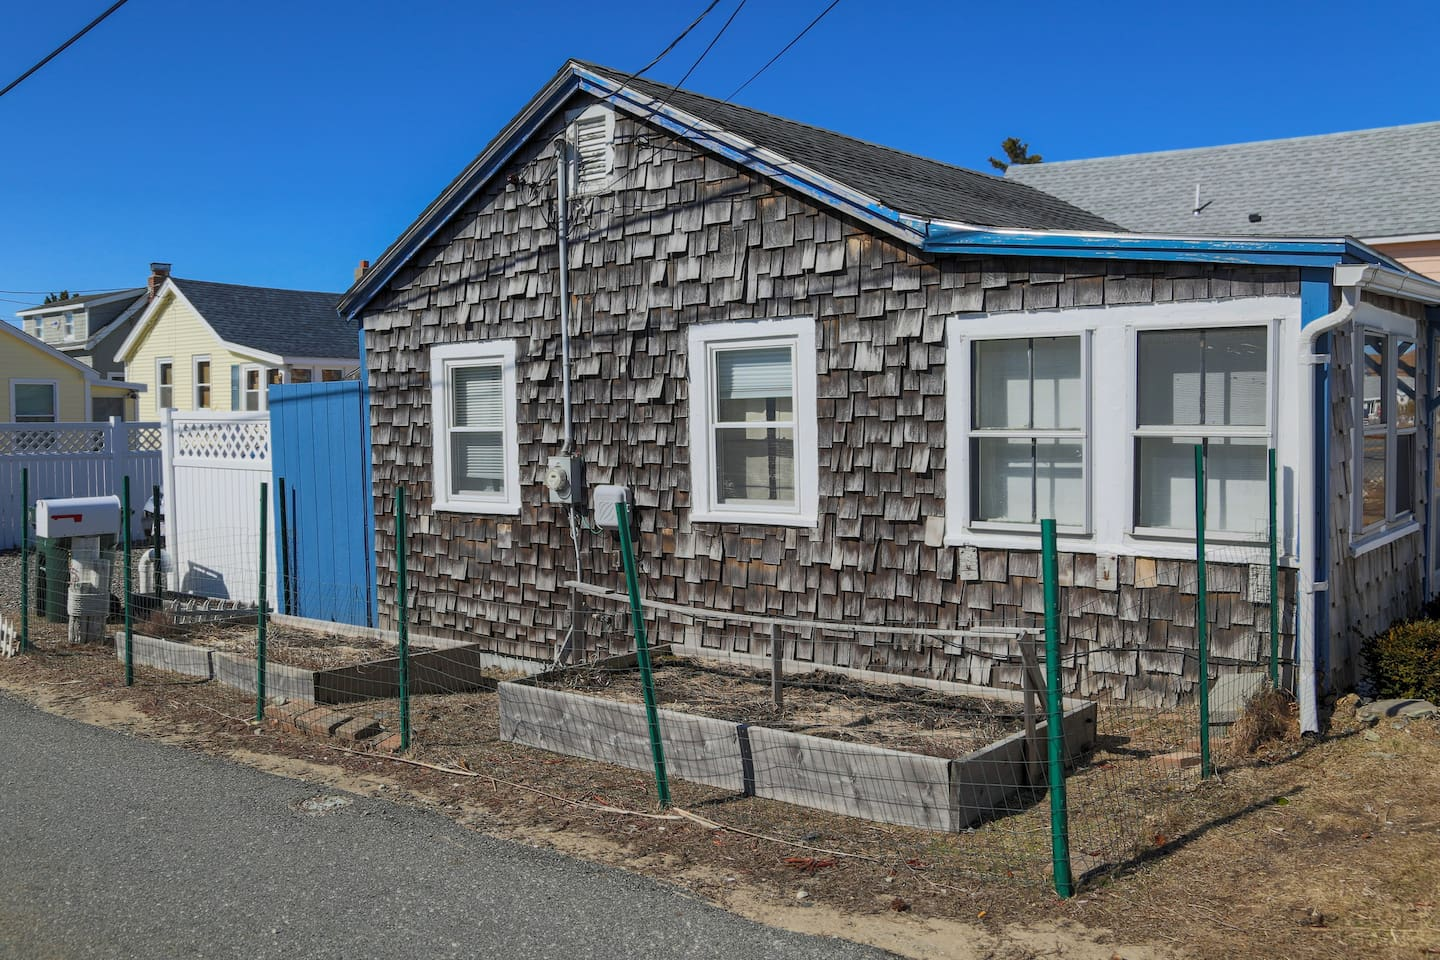 A side view of the beach cottage. During the summer, you may see wild flowers or tomatoes.